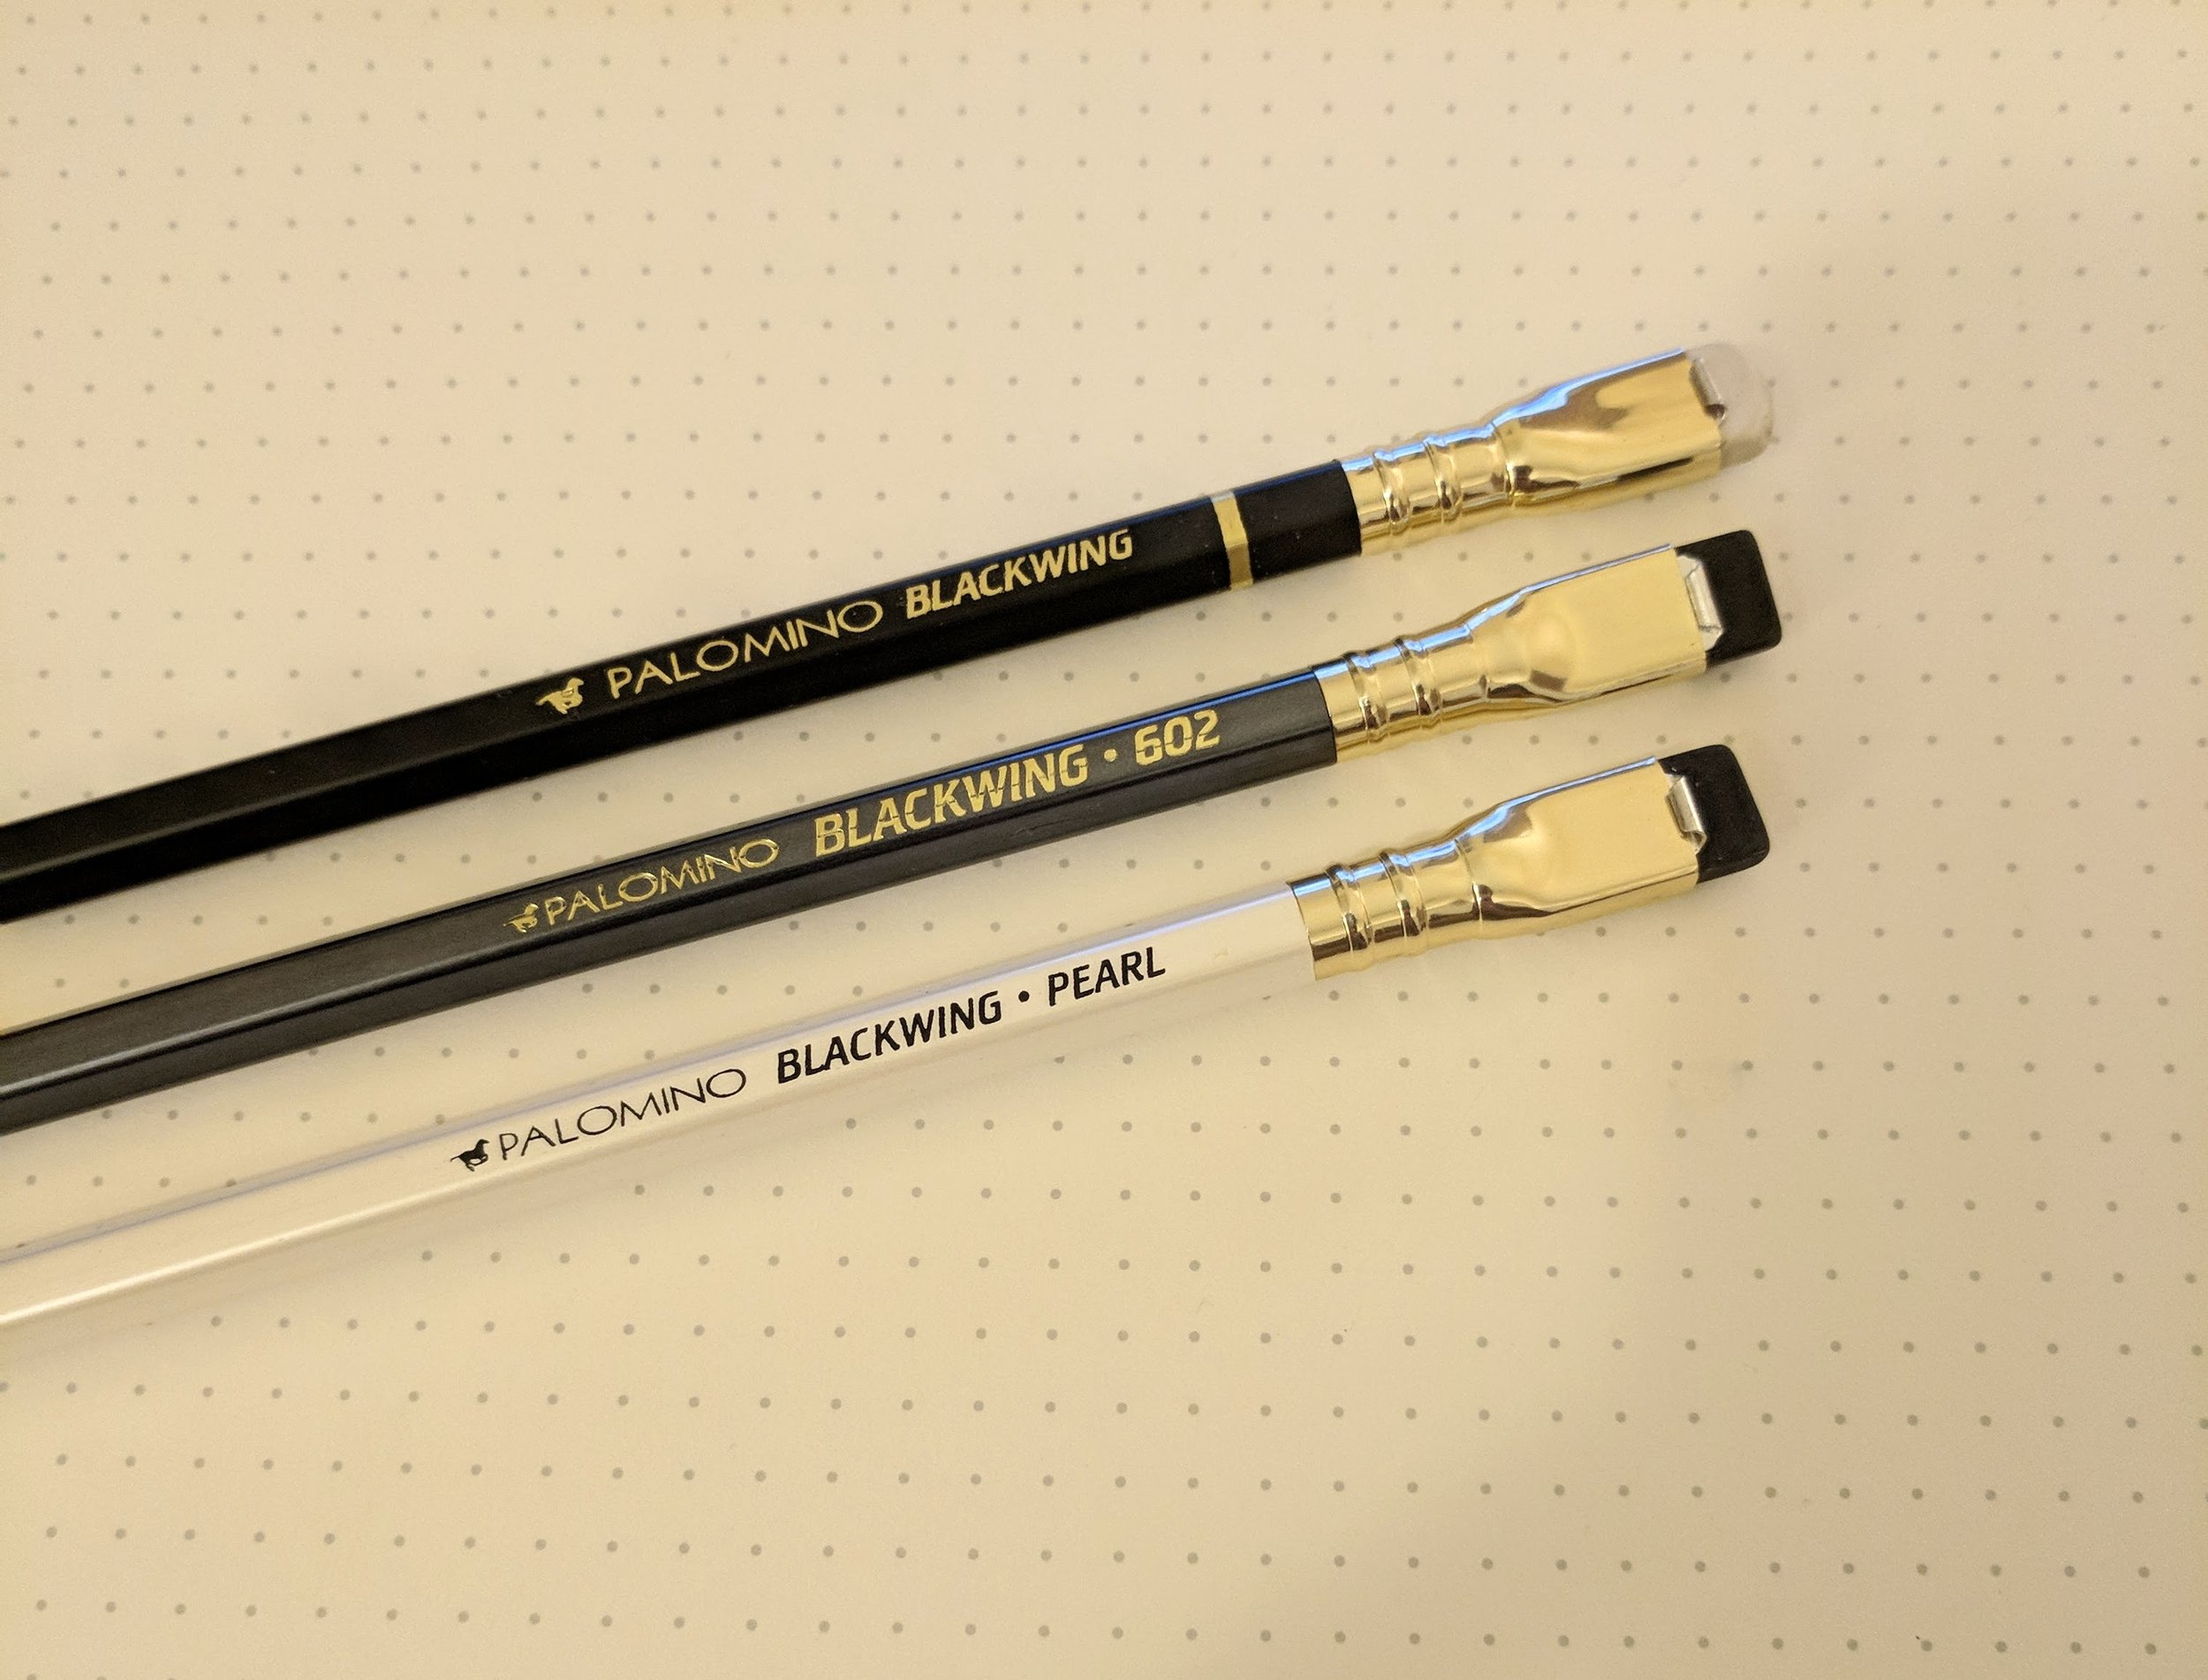 The three Blackwing finishes, from top: (1) Blackwing original; (2) Blackwing 602; and (3) Blackwing Pearl